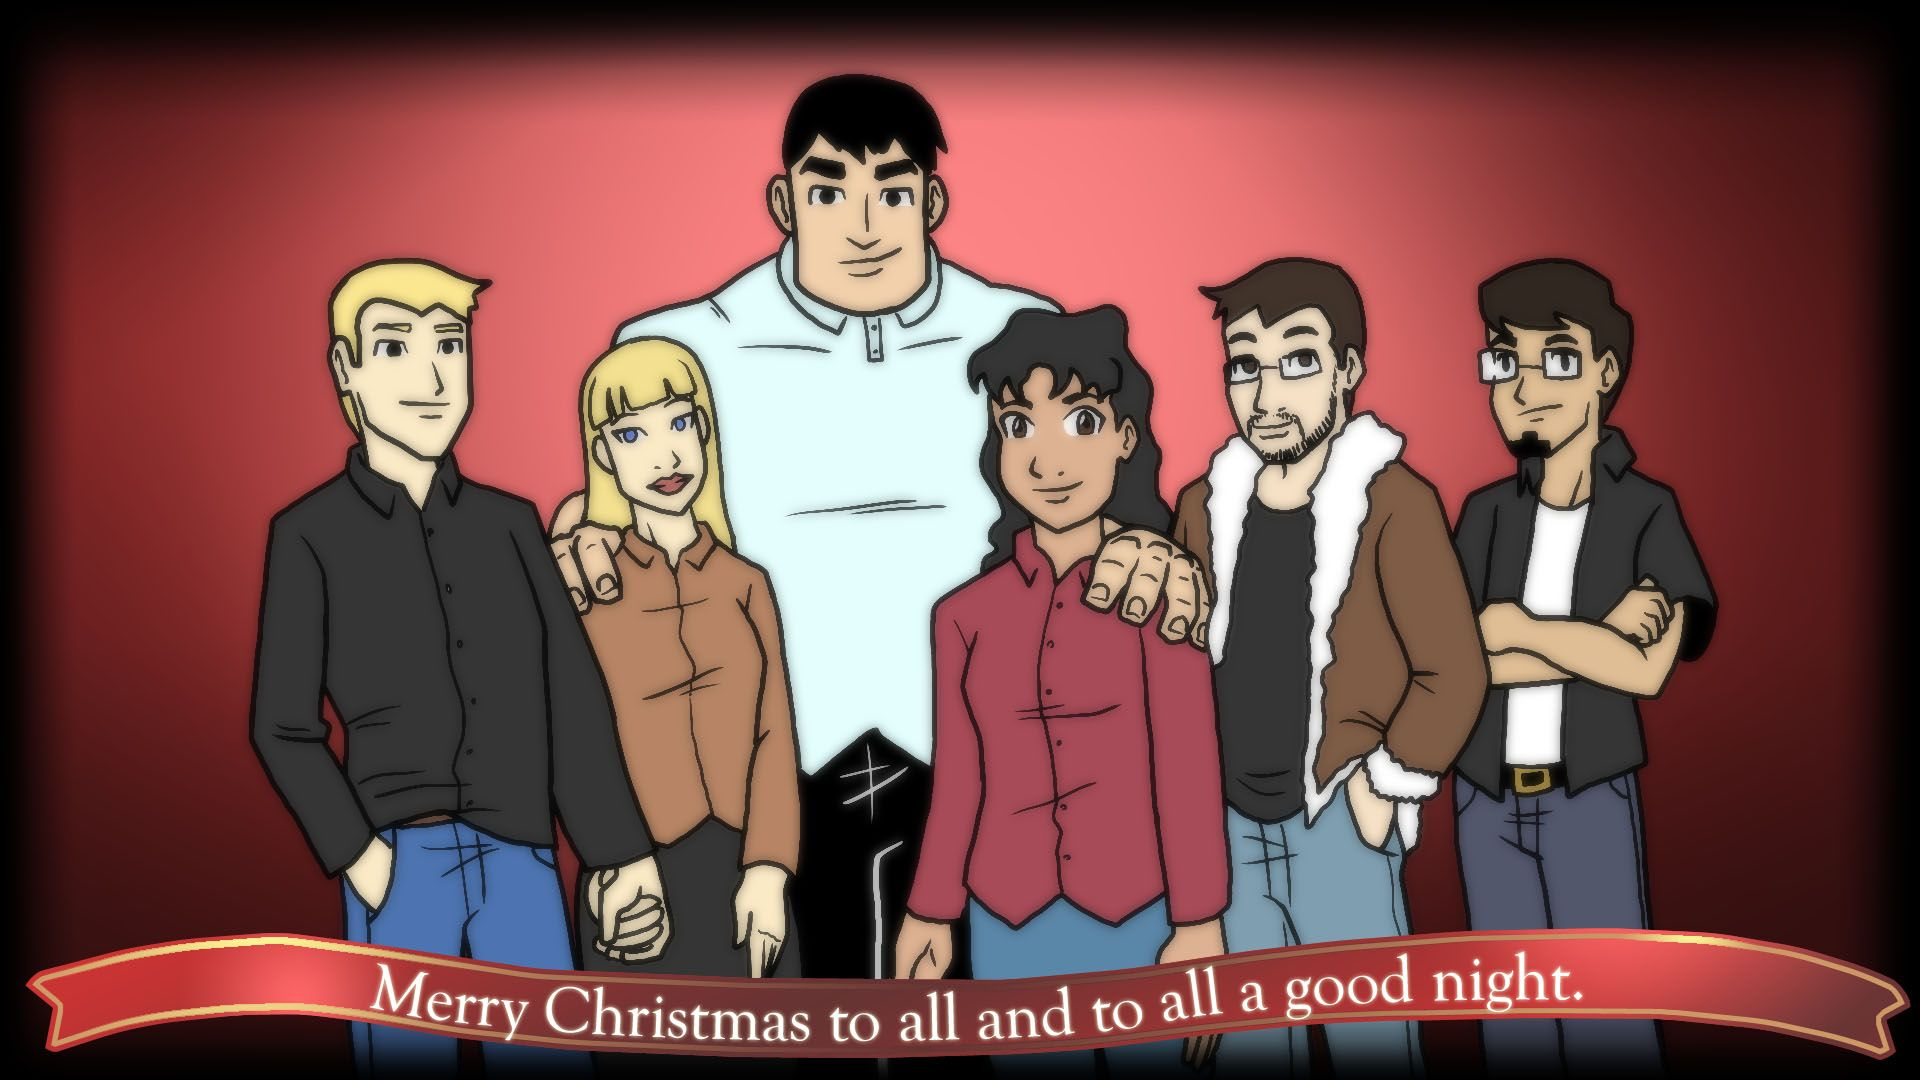 Merry Christmas to all and to all a good night! | A christmas story, Merry christmas to all ...